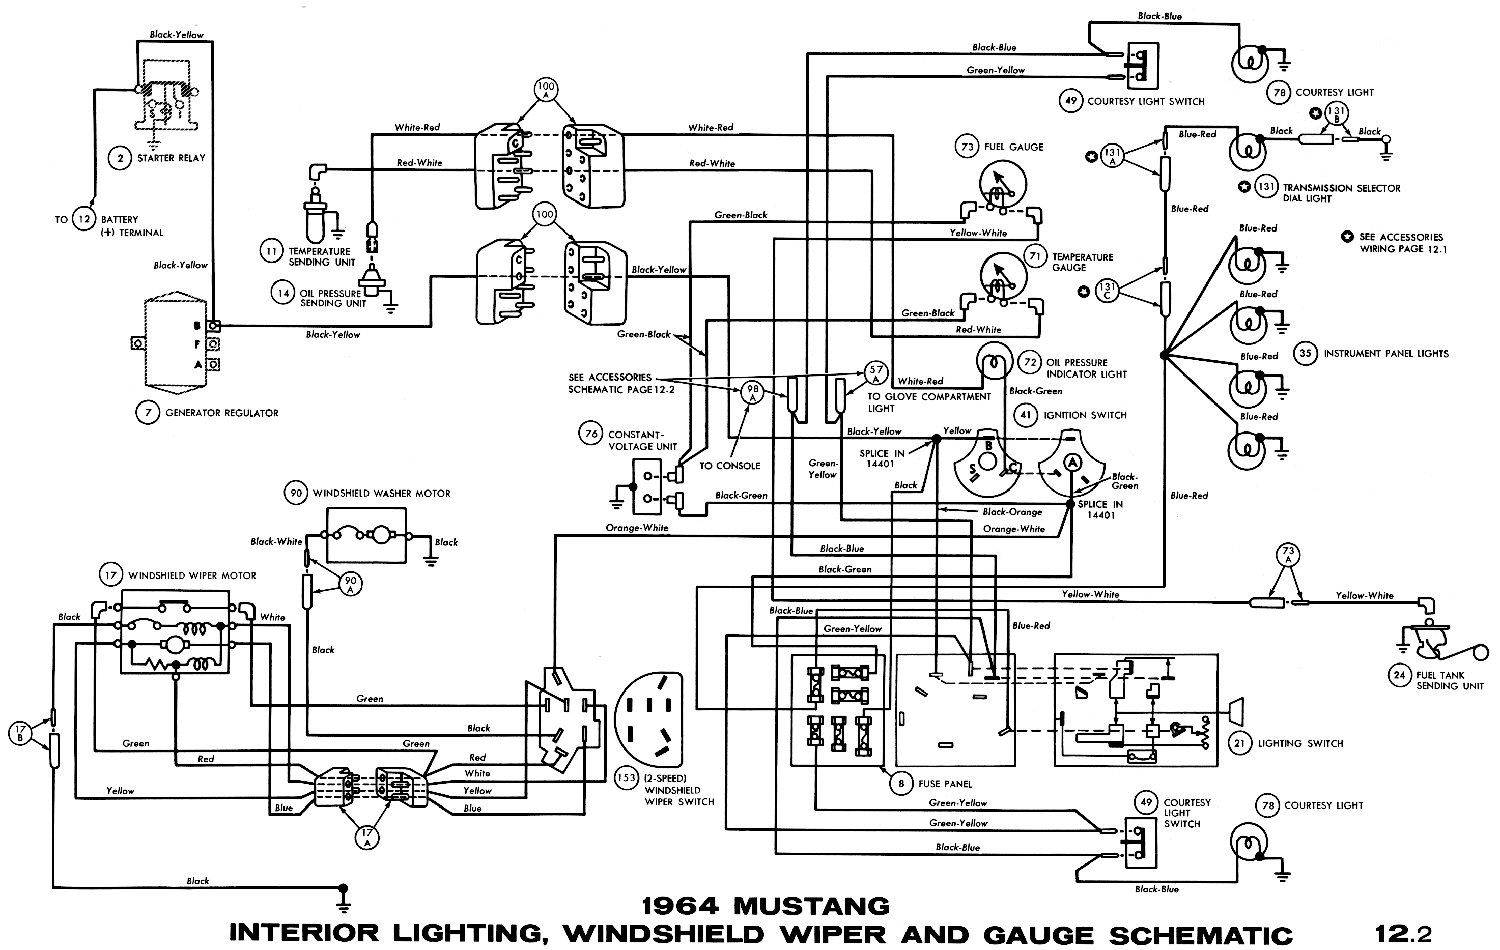 Wiring Harness Drawing For 67 Ford F100 | Wiring Diagram on mustang electrical diagram, 65 mustang diagram, mustang fuel line diagram, mustang solenoid wiring diagram, mustang electrical harness, mustang rear caliper diagram, 2006 mustang shaker 500 wiring diagram, 1966 ford truck alternator diagram, mustang vacuum line diagram, mustang frame diagram, mustang ignition diagram, 1993 ford mustang vacuum diagram, 1988 mustang wiring diagram, mustang fuel system diagram, mustang rear brake assembly diagram, 1992 ford mustang diagram, mustang front end diagram, 1987 mustang wiring diagram, 1970 mustang instrument cluster diagram, 90 mustang wiring diagram,